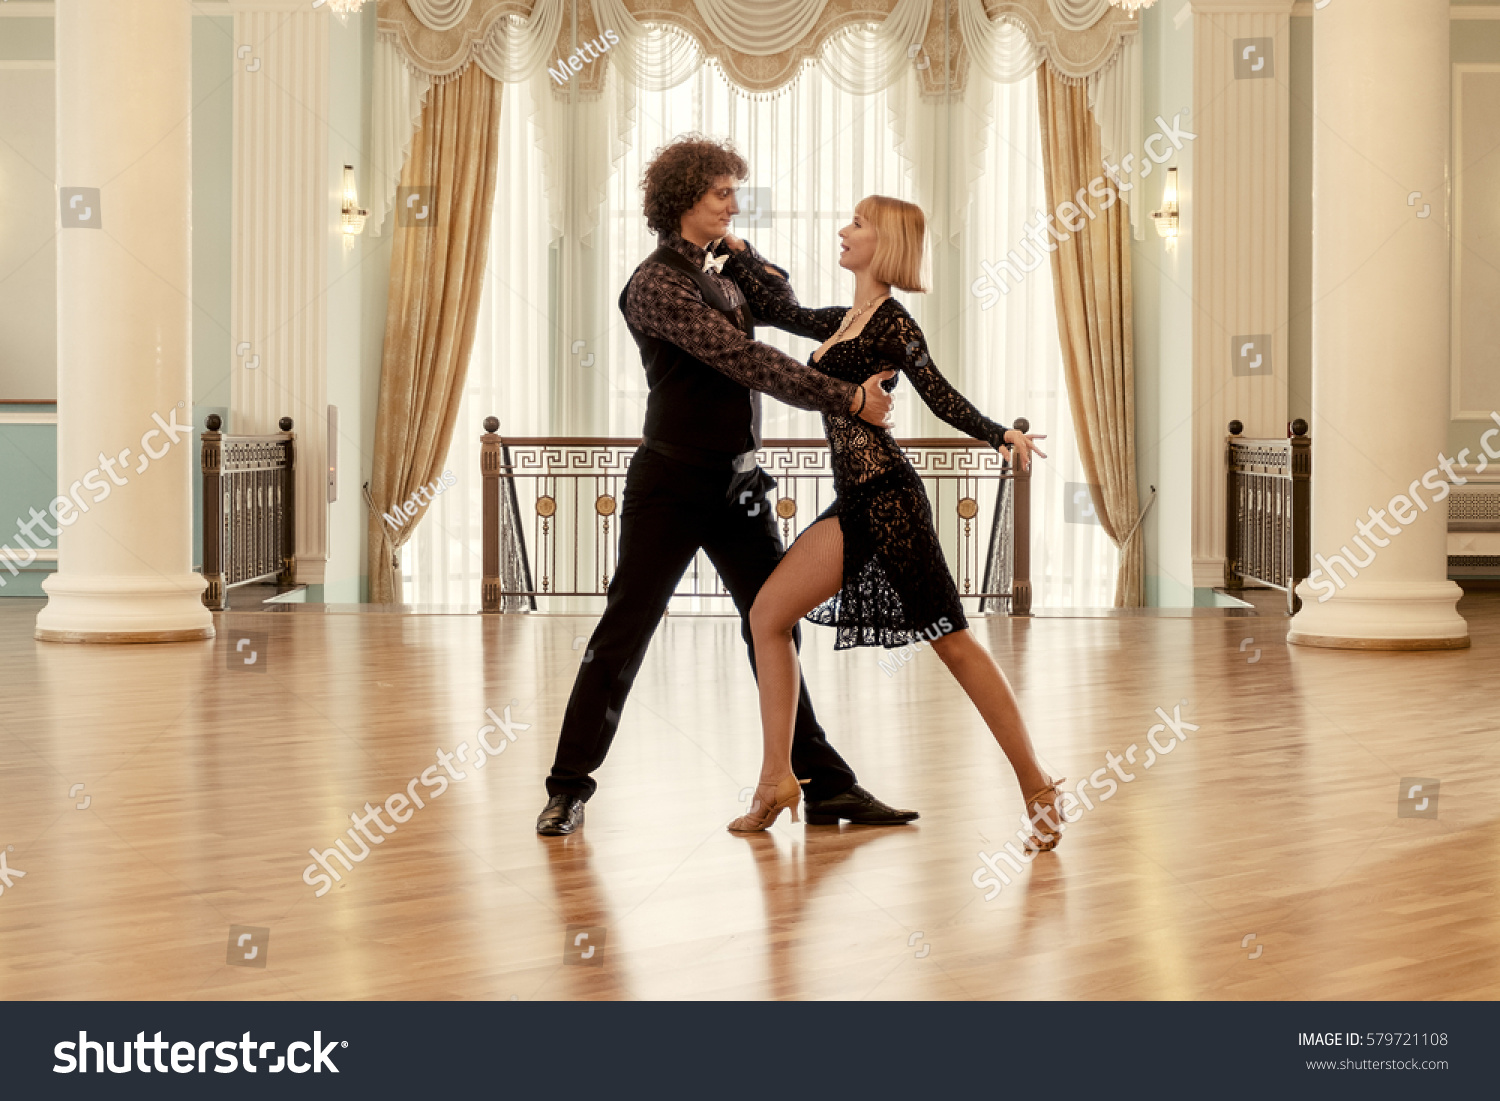 Loving couple dancing latino dance in rich dance-hall toned image